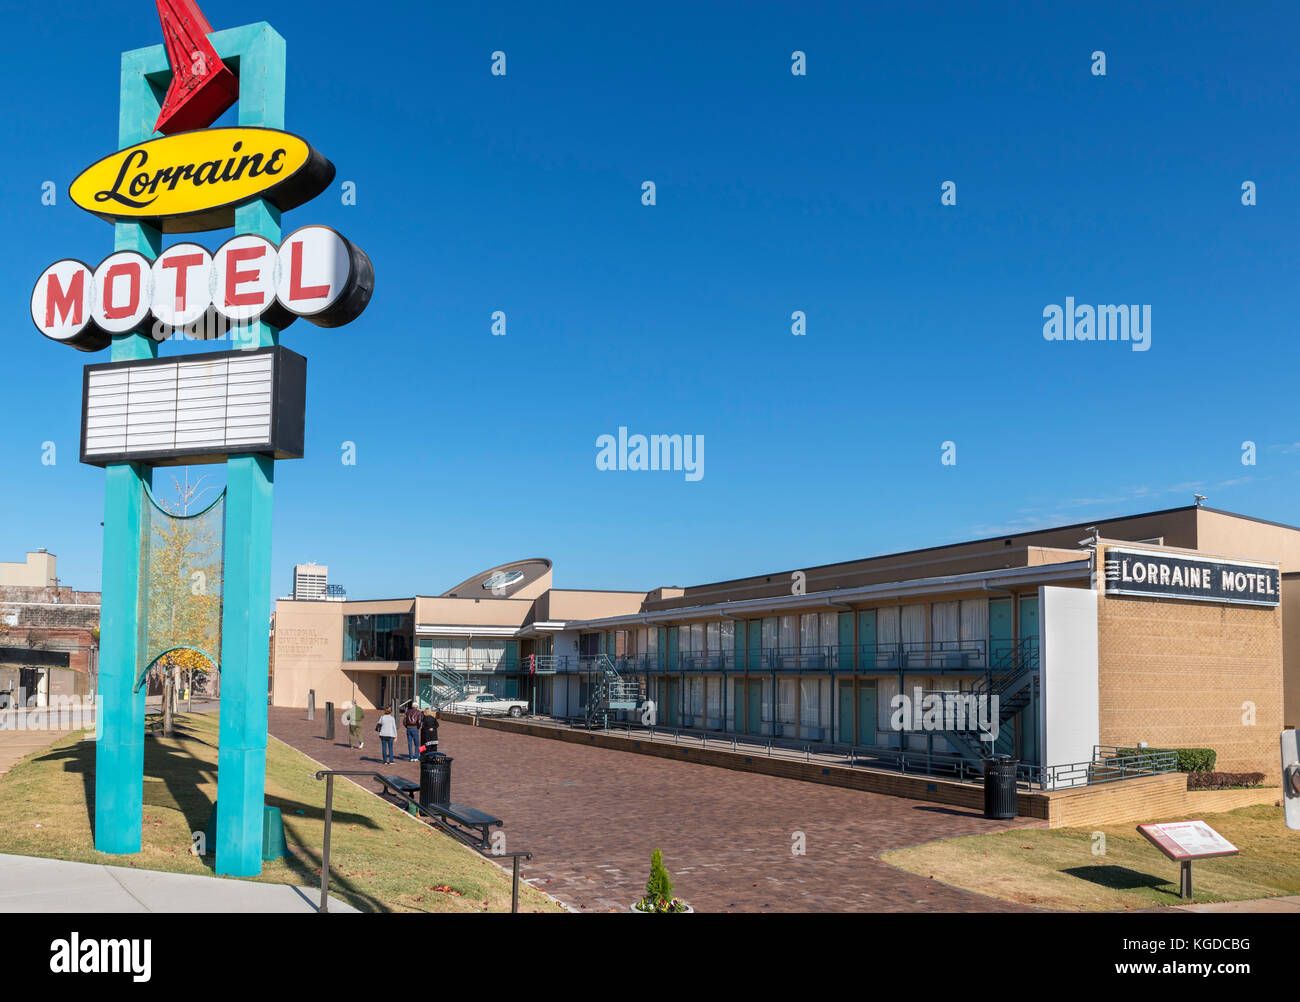 The National Civil Rights Museum at the Lorraine Motel, Memphis,Tennessee, USA - Stock Image